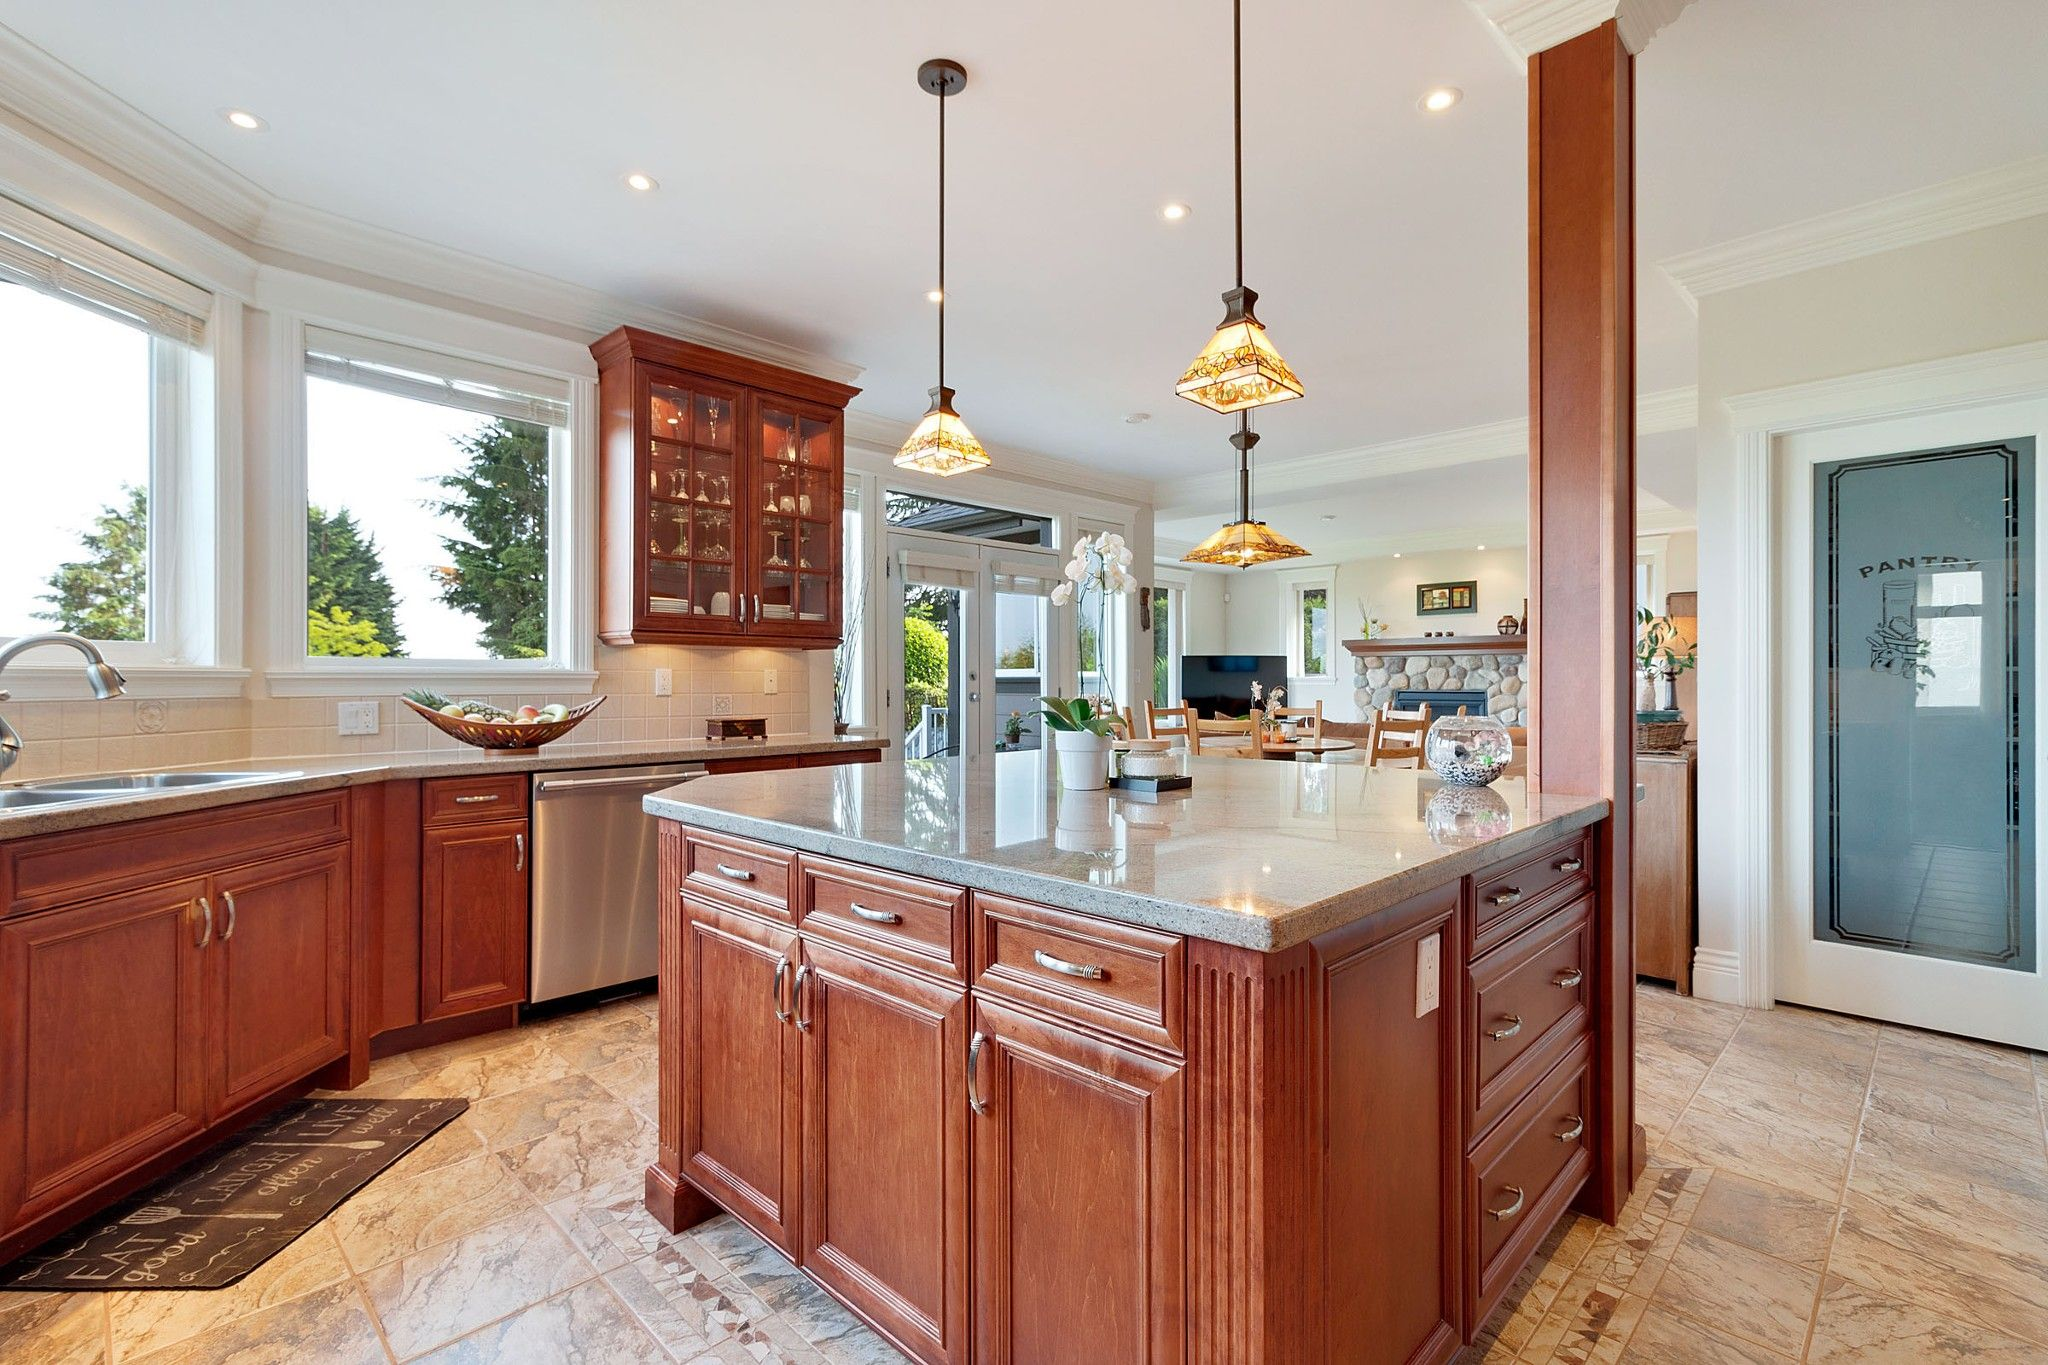 Photo 7: Photos: 1237 DYCK Road in North Vancouver: Lynn Valley House for sale : MLS®# R2374868